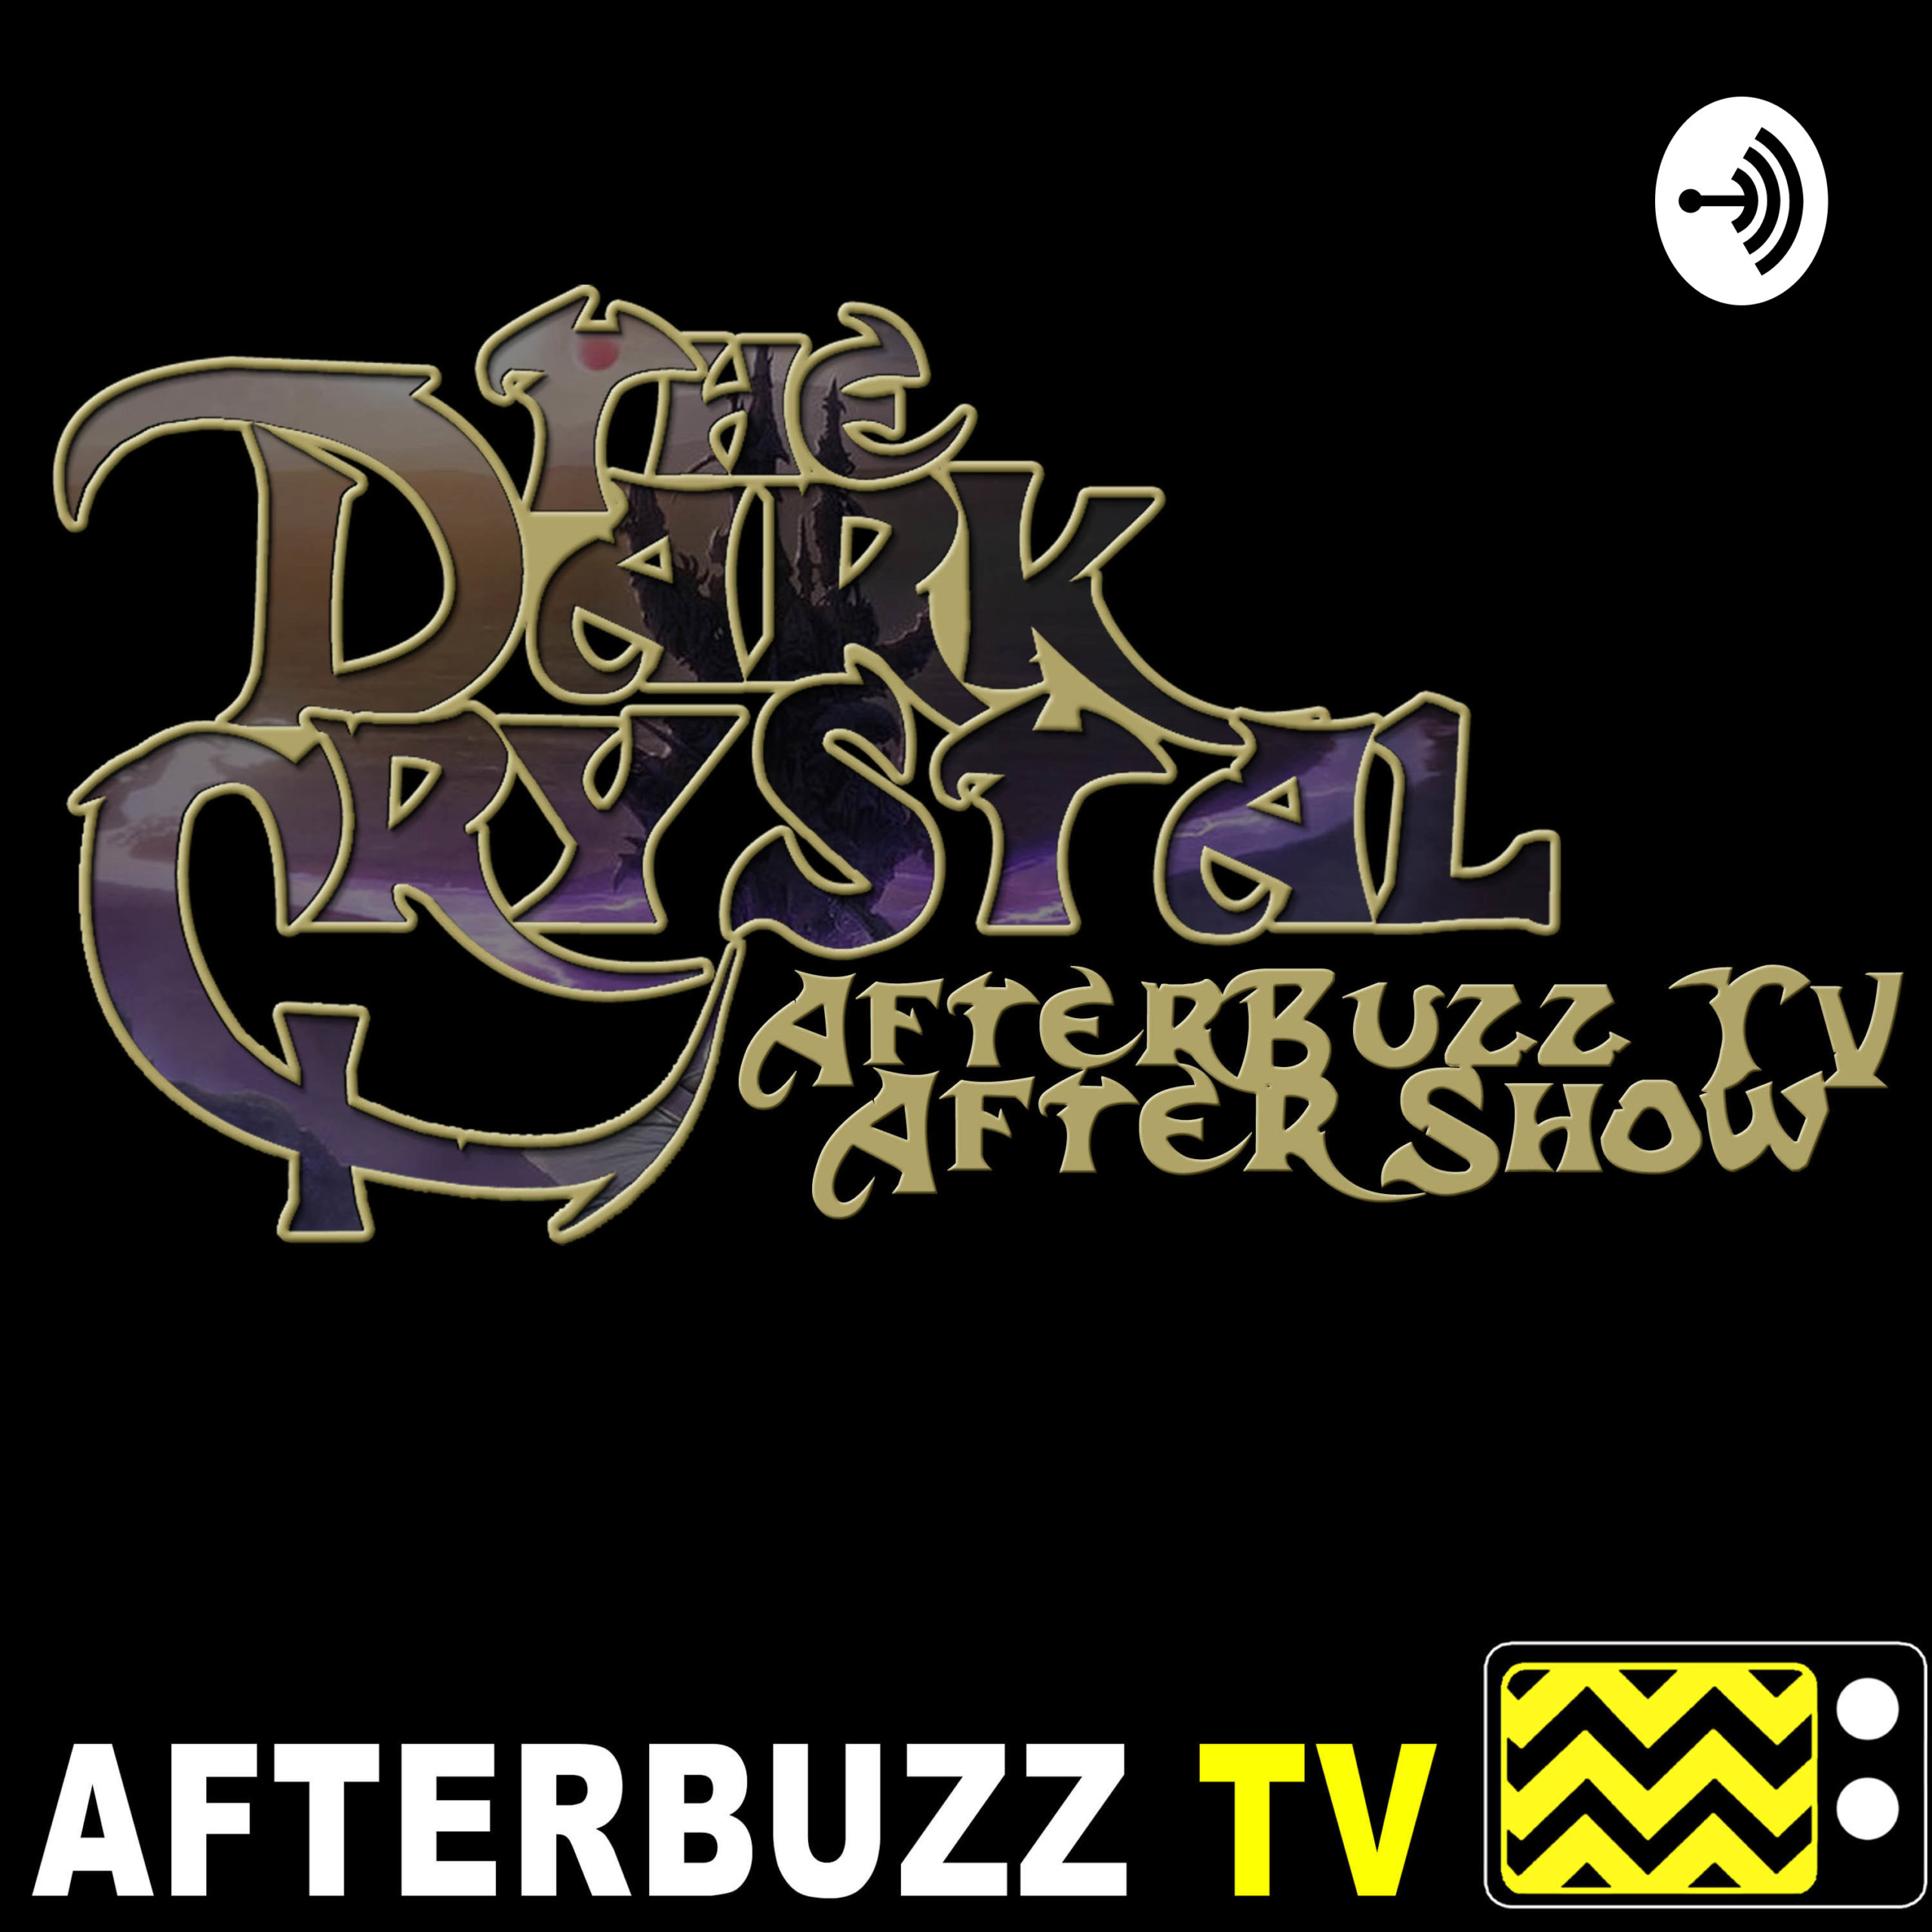 The Dark Crystal Podcast